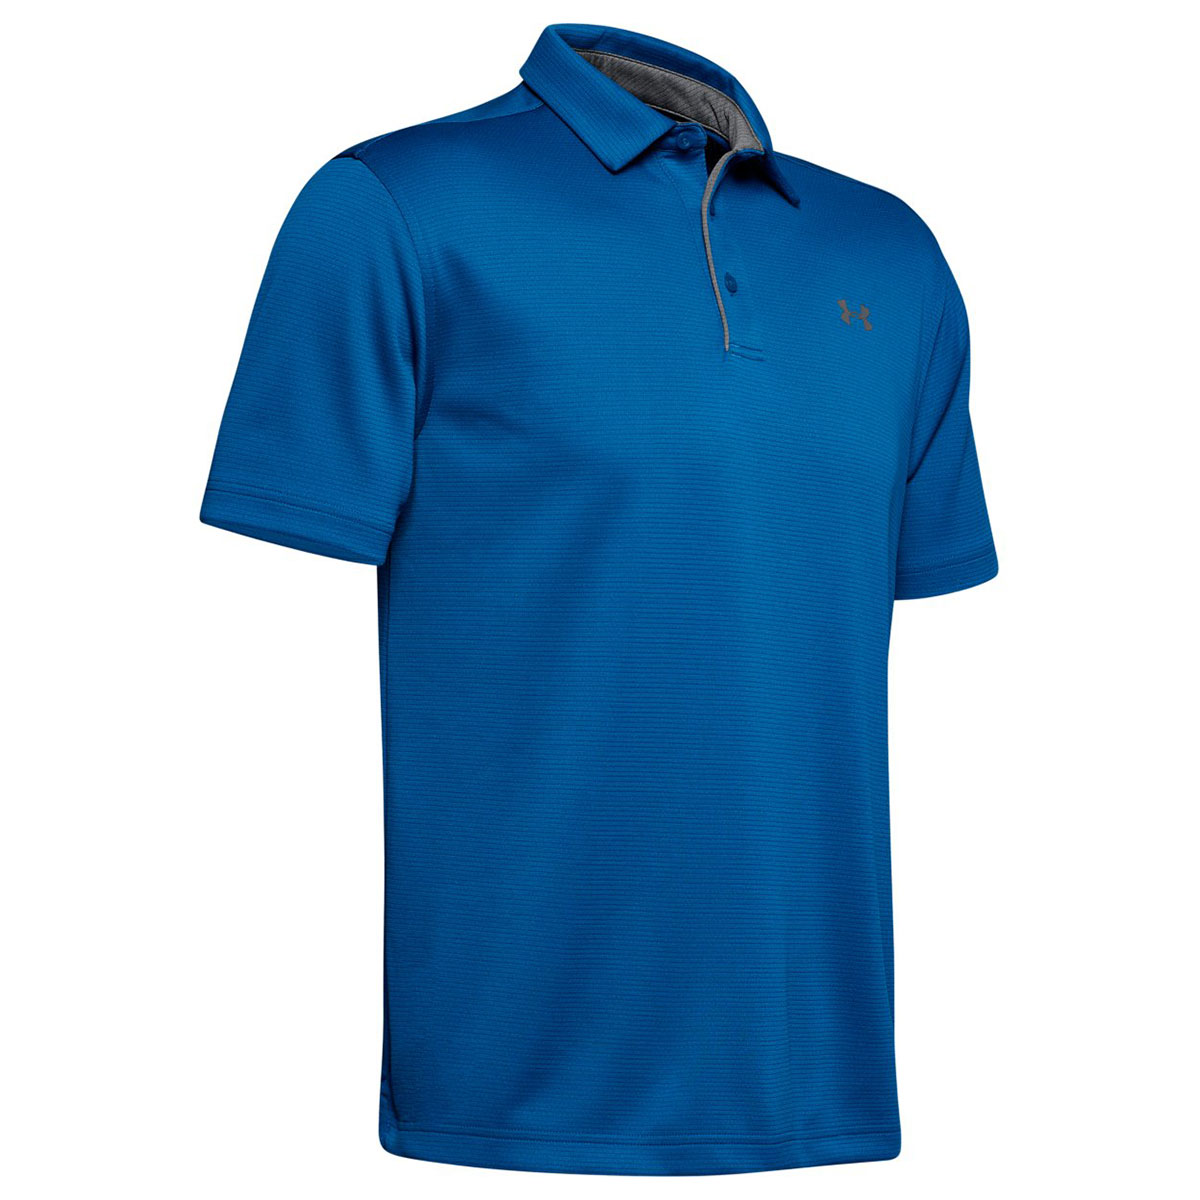 Under-Armour-Mens-2019-Golf-Tech-Wicking-Textured-Soft-Light-Polo-Shirt thumbnail 76